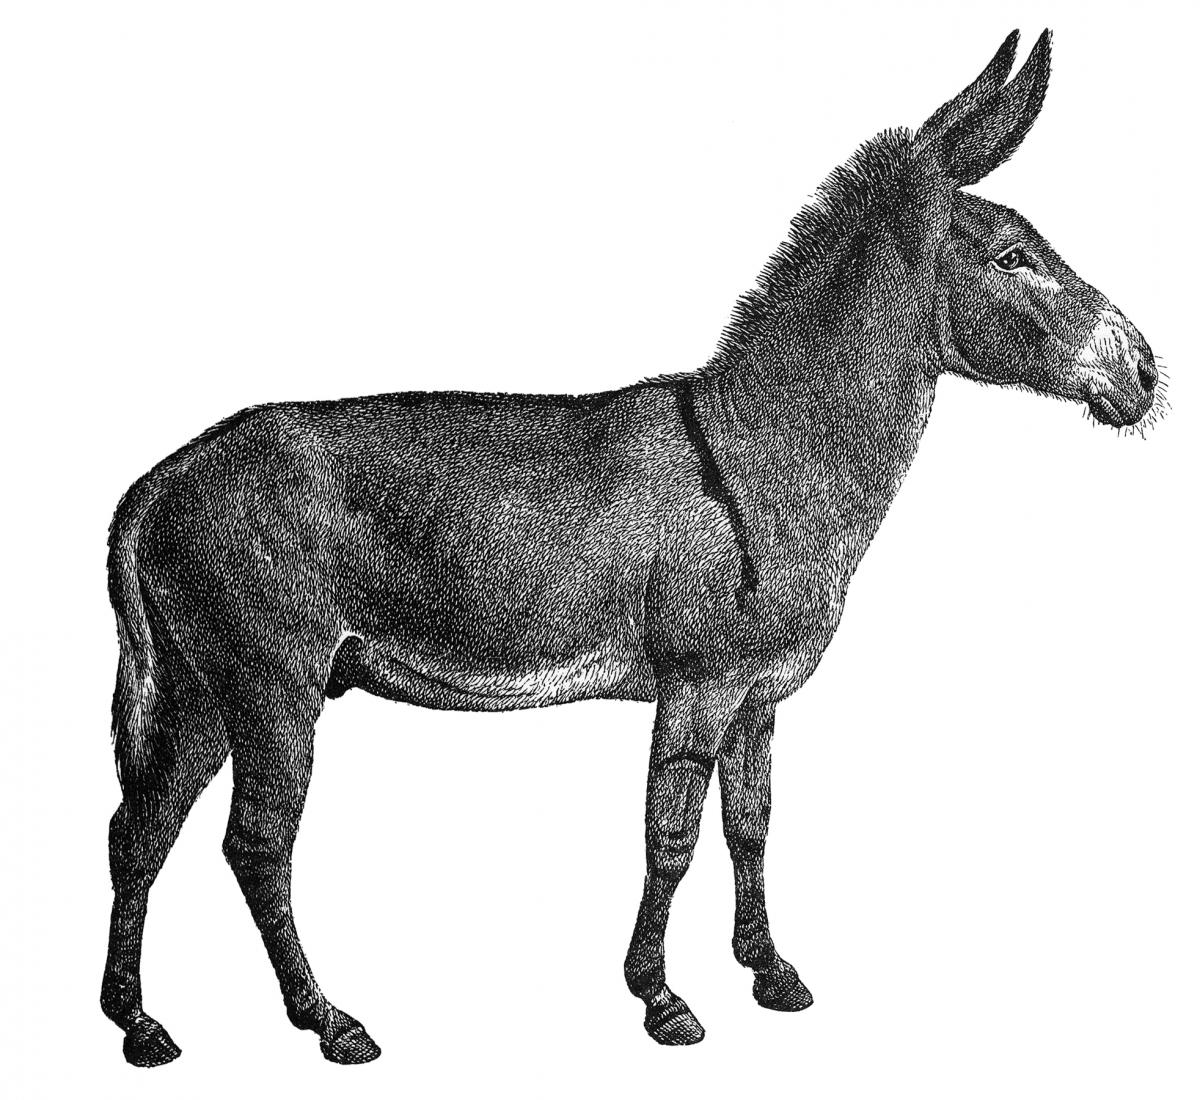 Side view of a gray and white donkey, facing the right